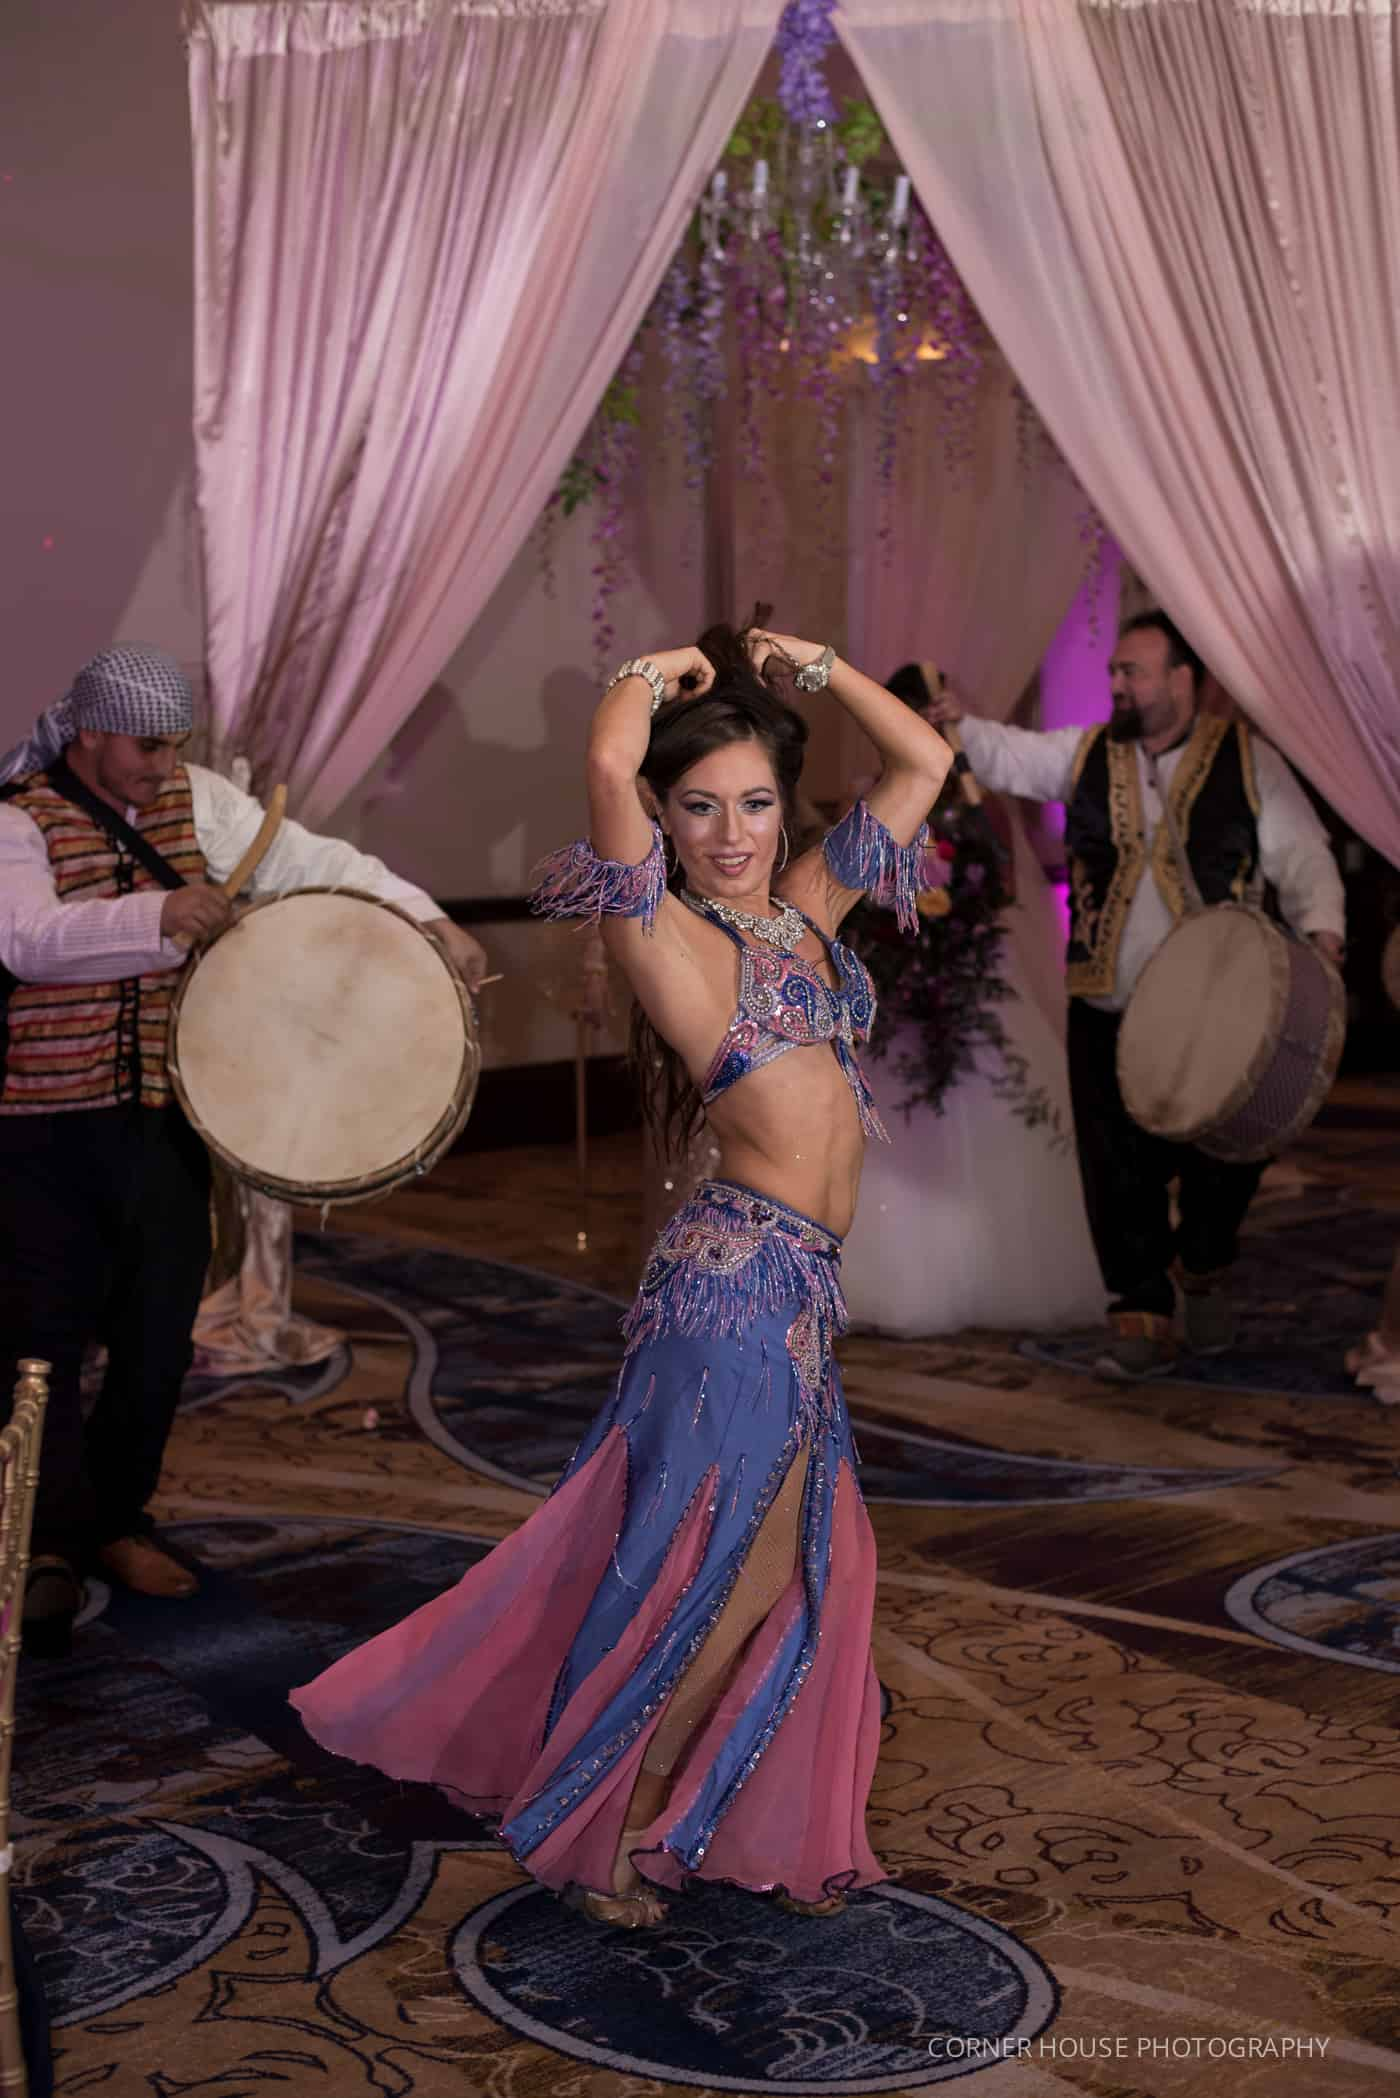 Carrara performing belly dance for a zaffe in Orlando